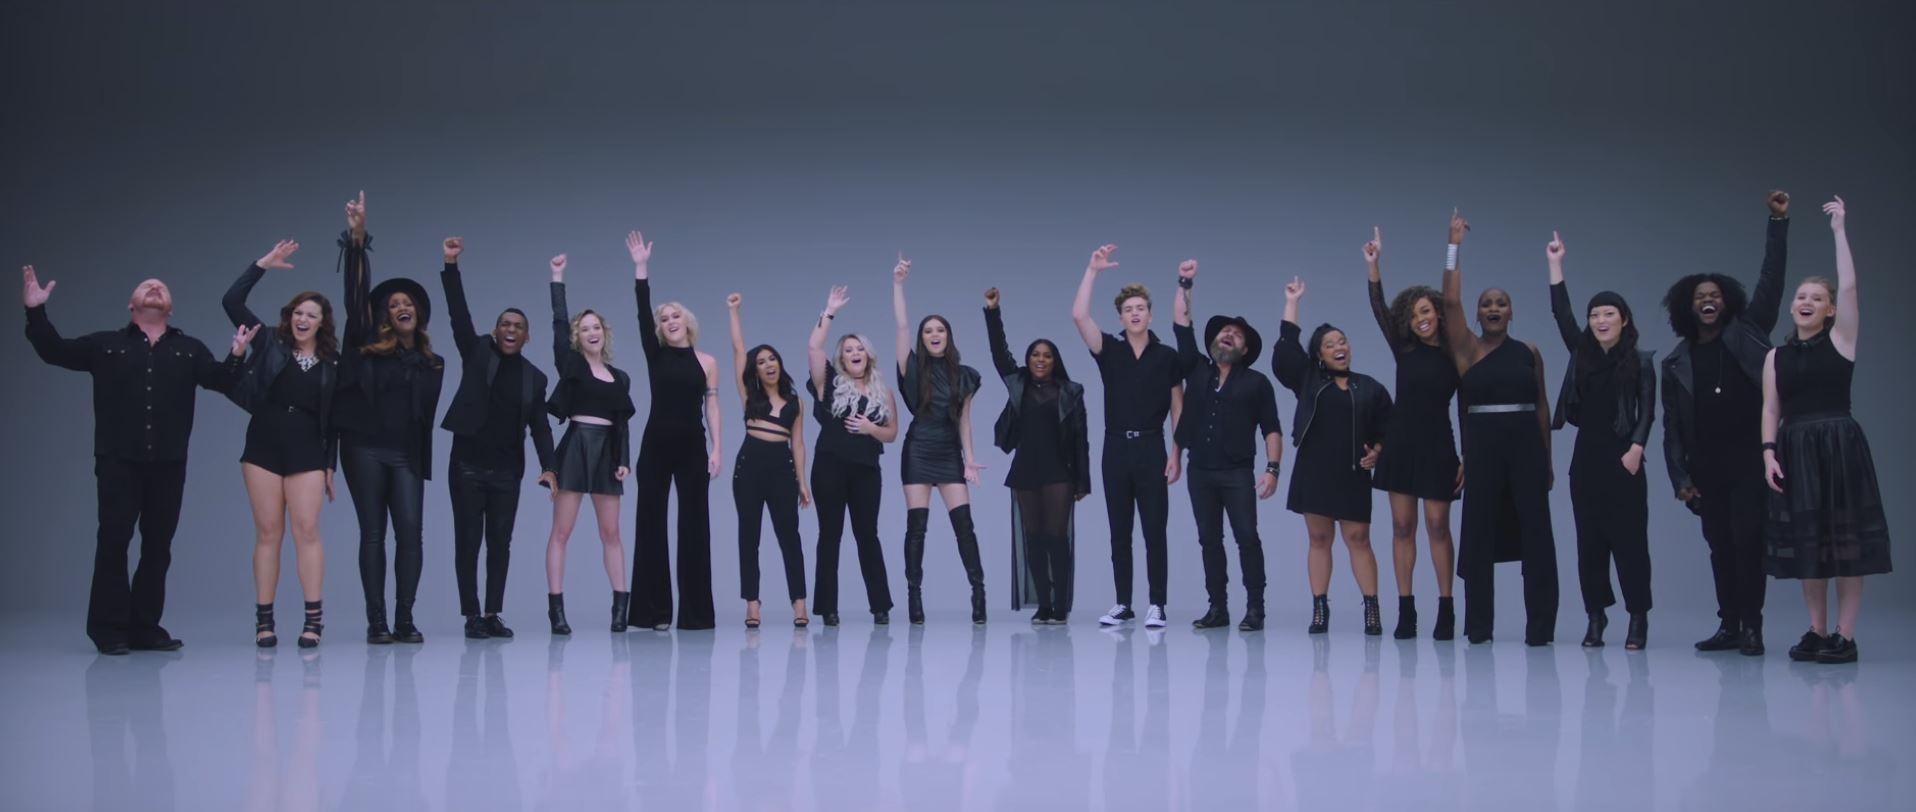 Pitch Perfect 3 Cast And The Voice Top 12 Makes Epic